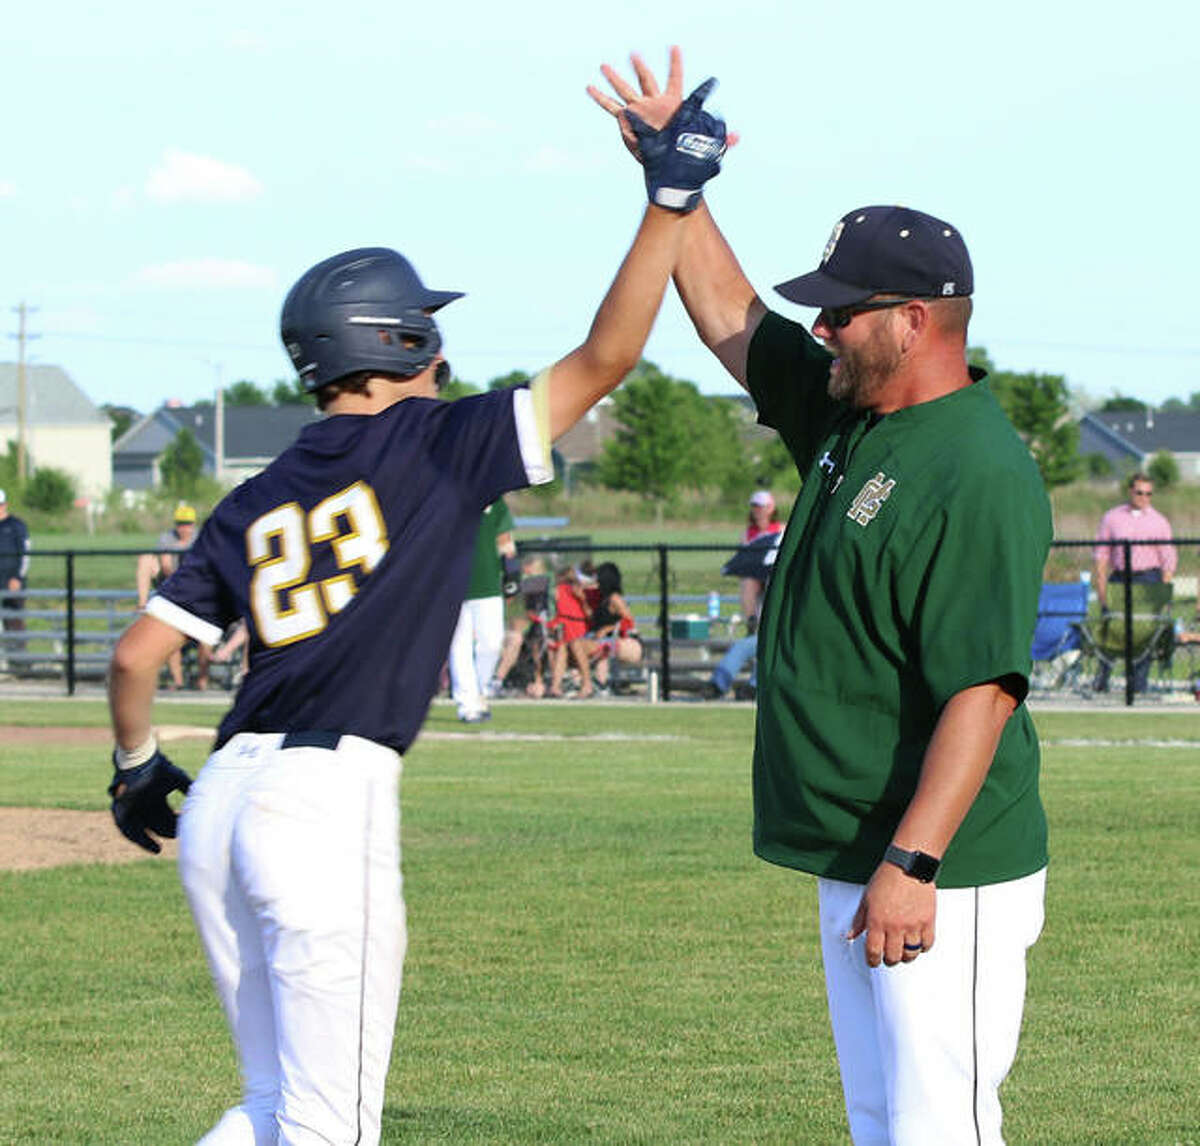 Father McGivney coach Chris Erwin (right) greets Jacob McKee rounding third base after McKee's home run in a regional championship victory over Metro-East Lutheran on June 7 in Glen Carbon.